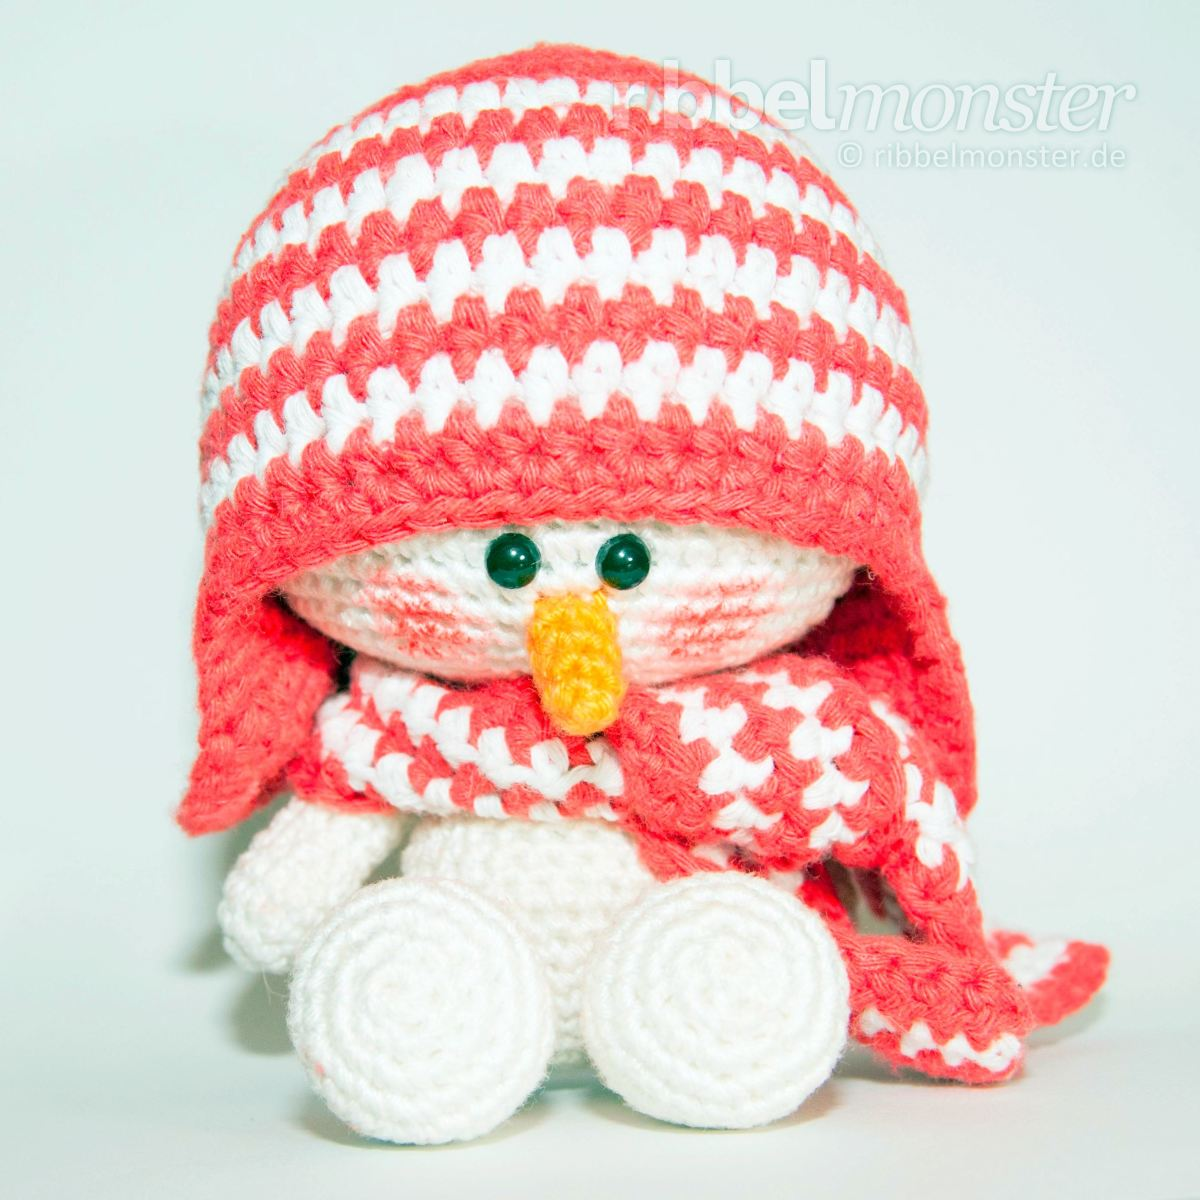 25 Free Amigurumi Snowman Crochet Patterns Hubpages